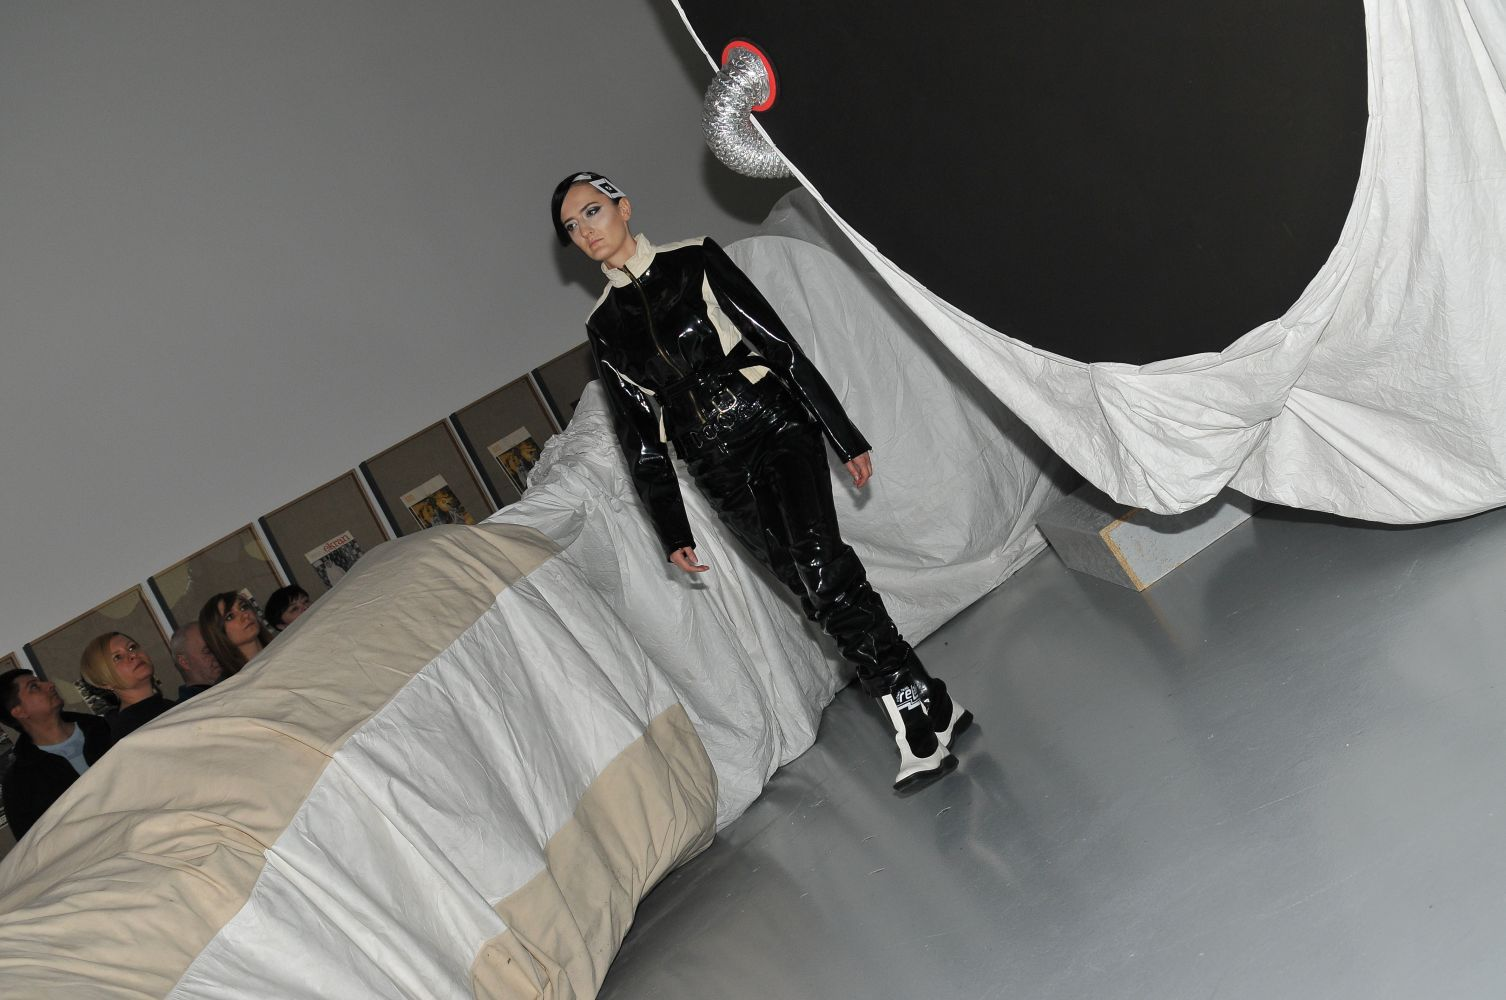 Larger Than Life Space Suit Houses Fashion Show: 003567.jpg